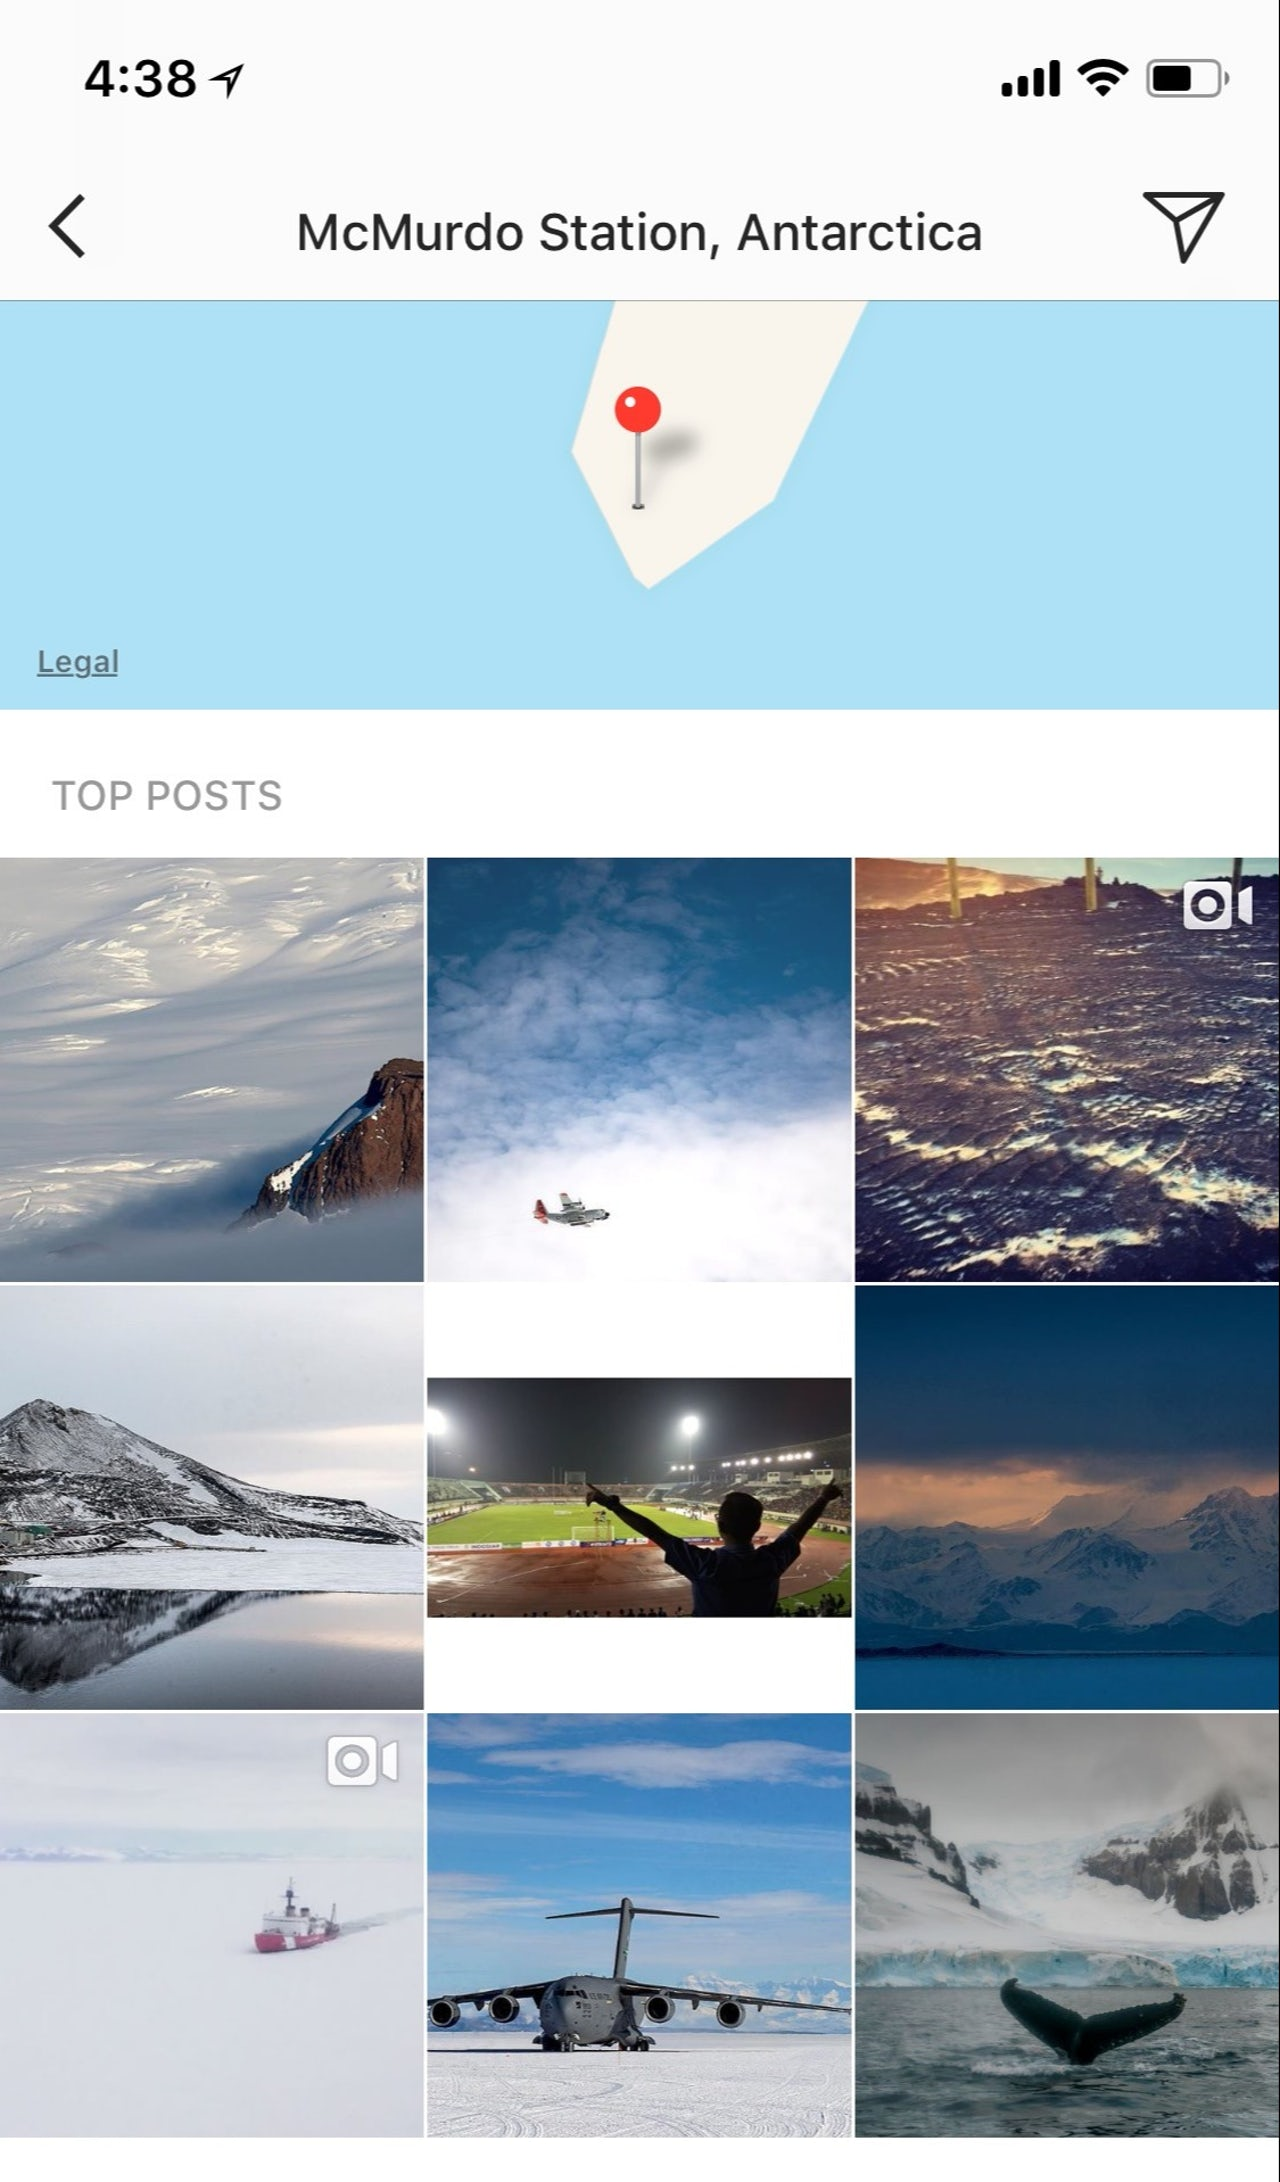 The top Instagram posts from McMurdo Station in Antarctica.